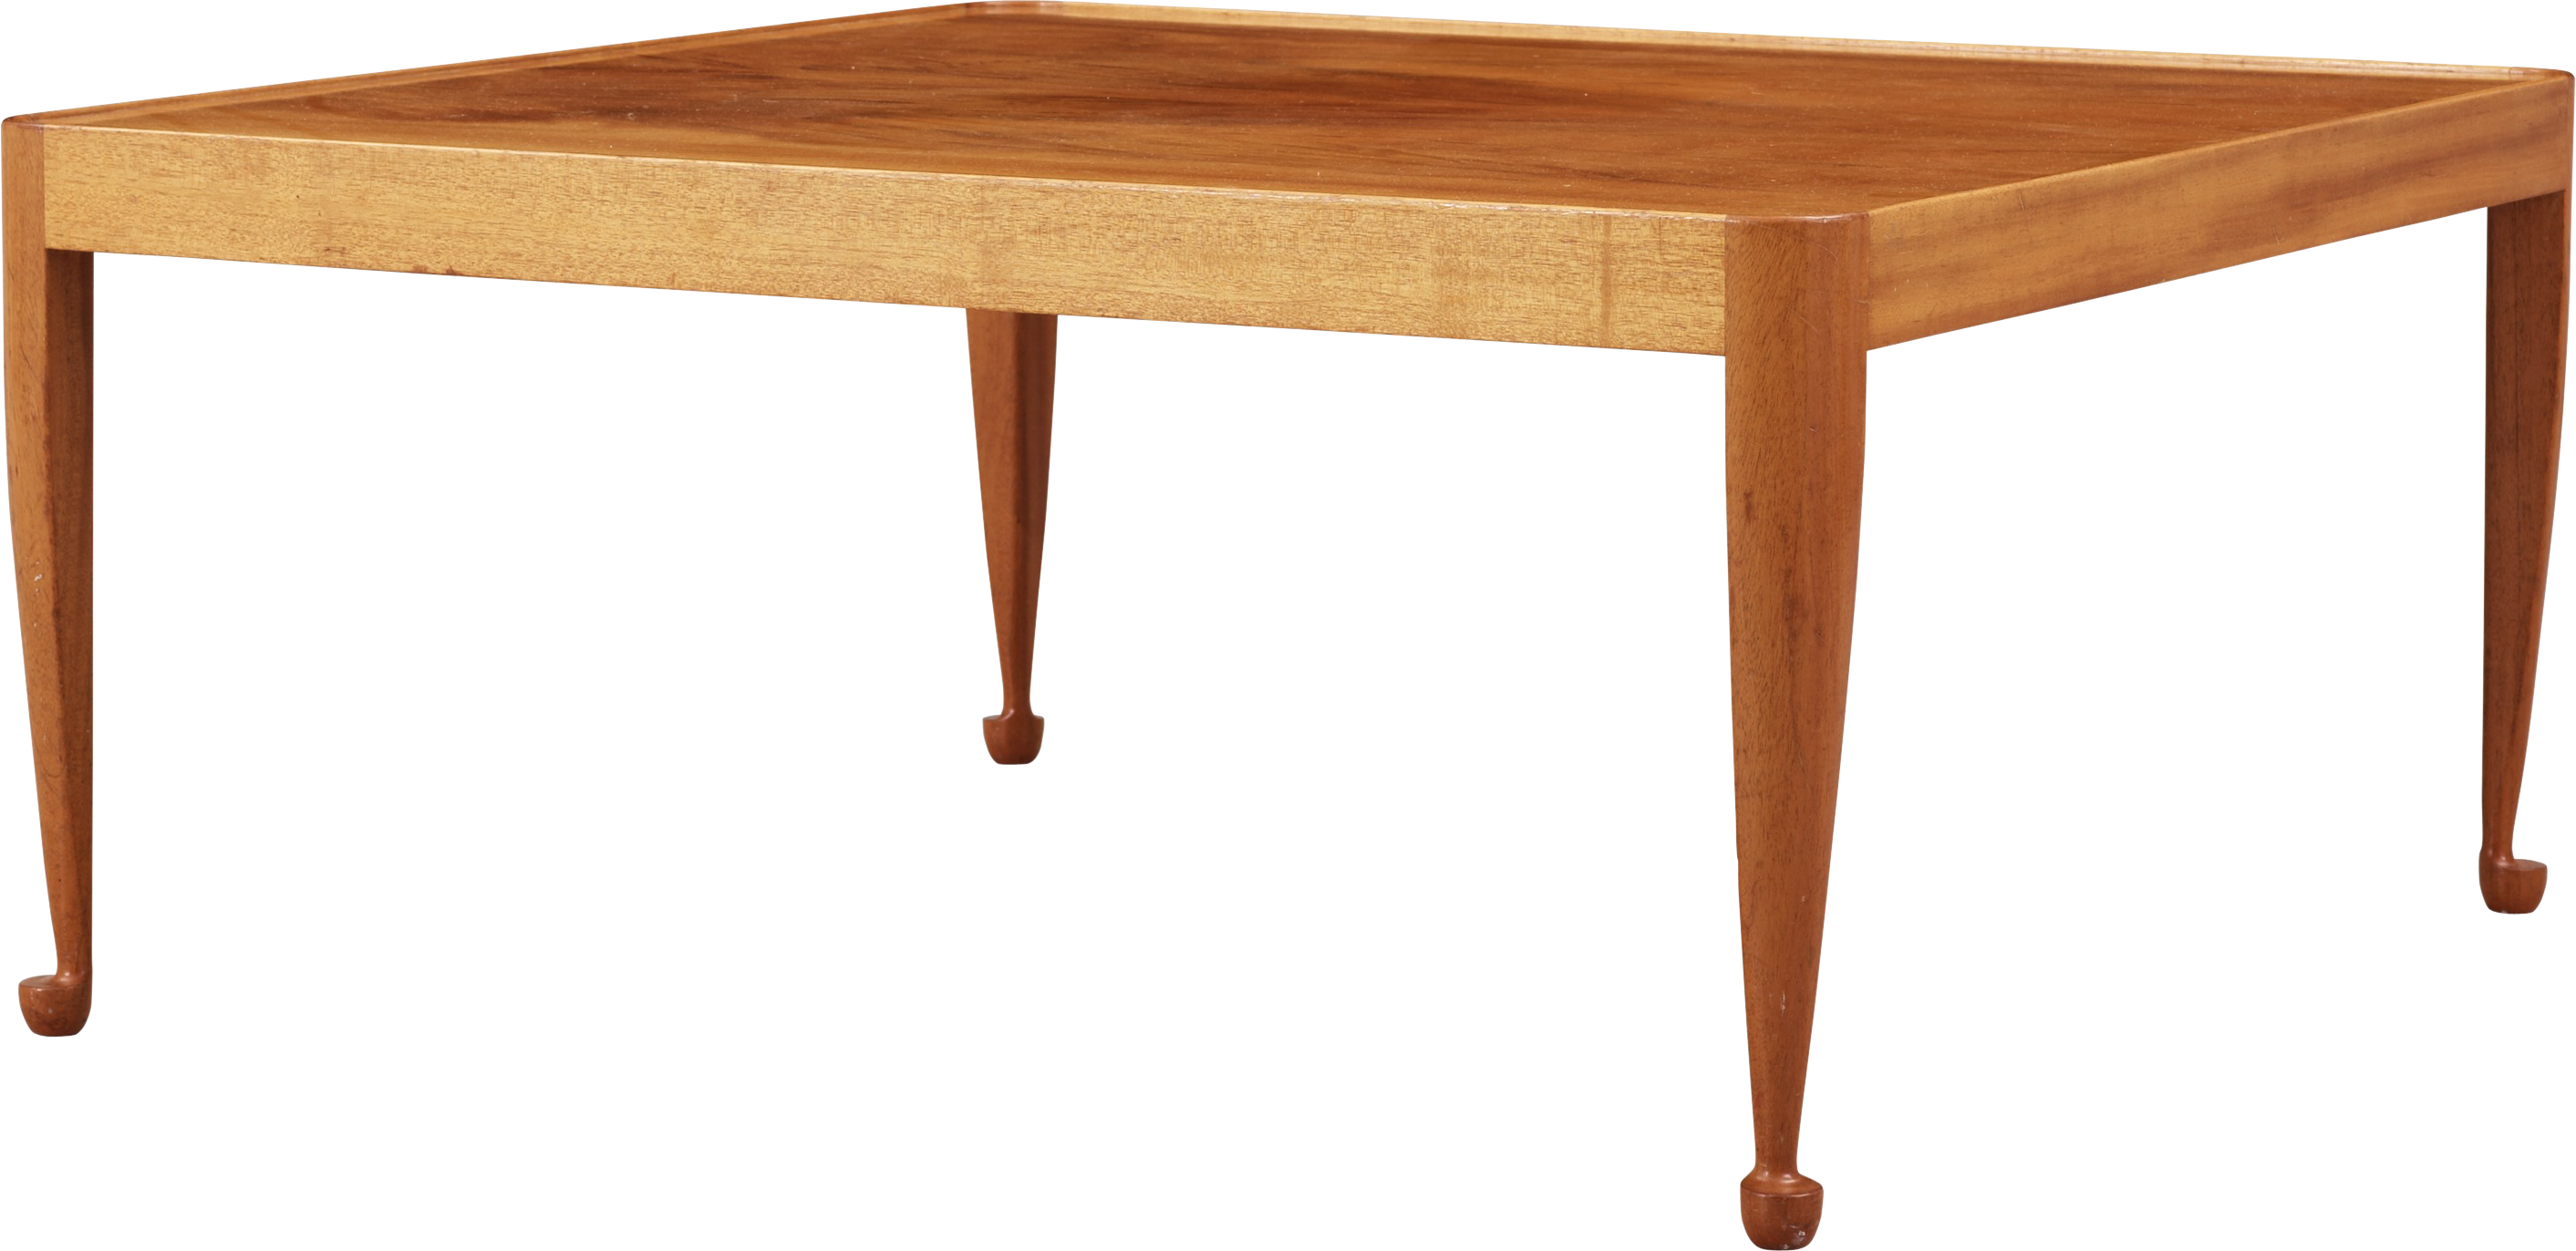 Desk clipart square table Download image Table PNG Table